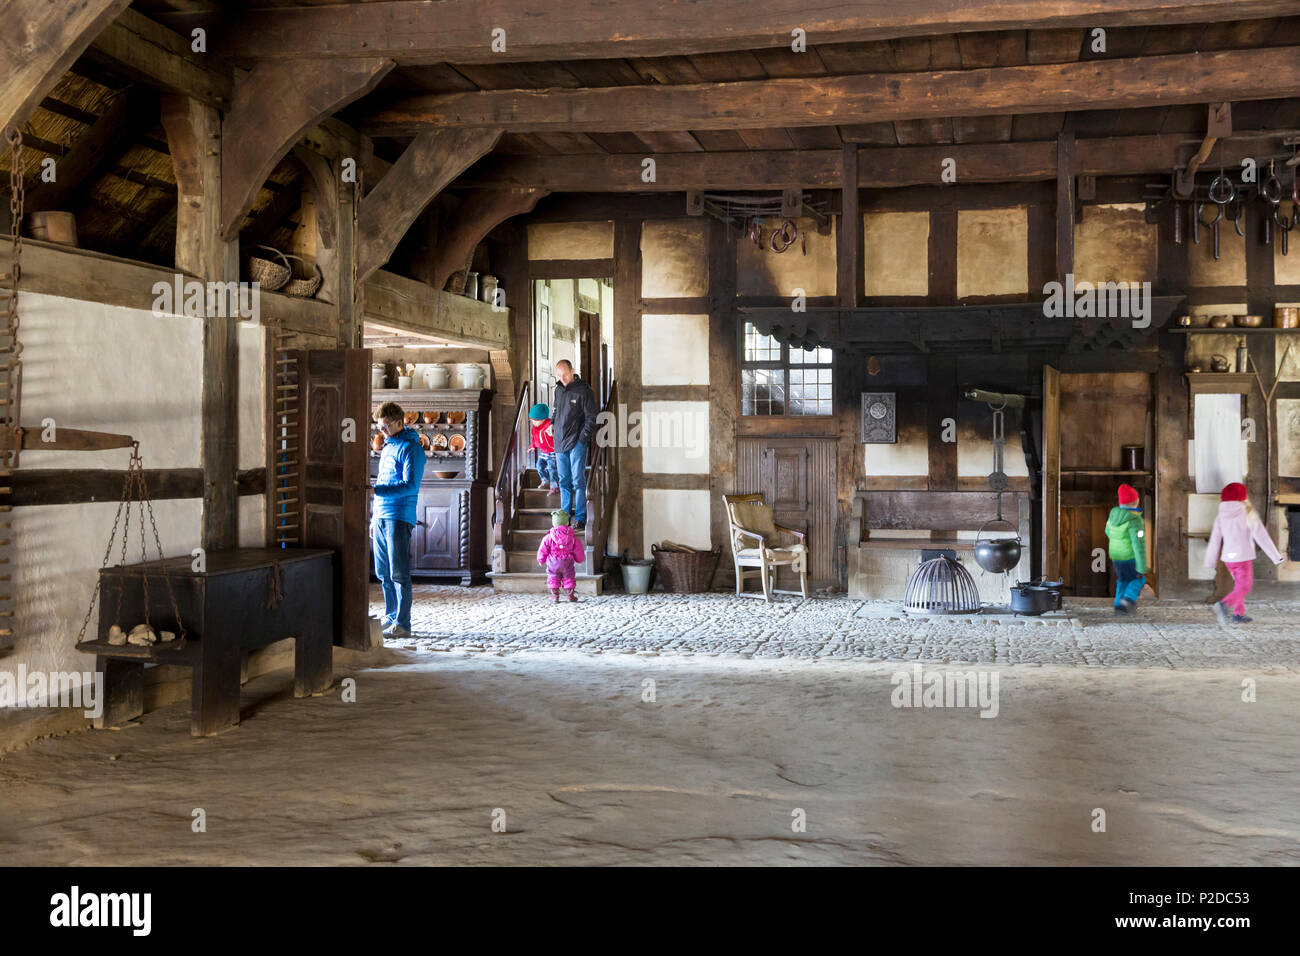 LWL-Open-Air Museum Detmold, visitors in the stable and farmhouse, traditional buildings, frame house, village, Detmold, North R - Stock Image